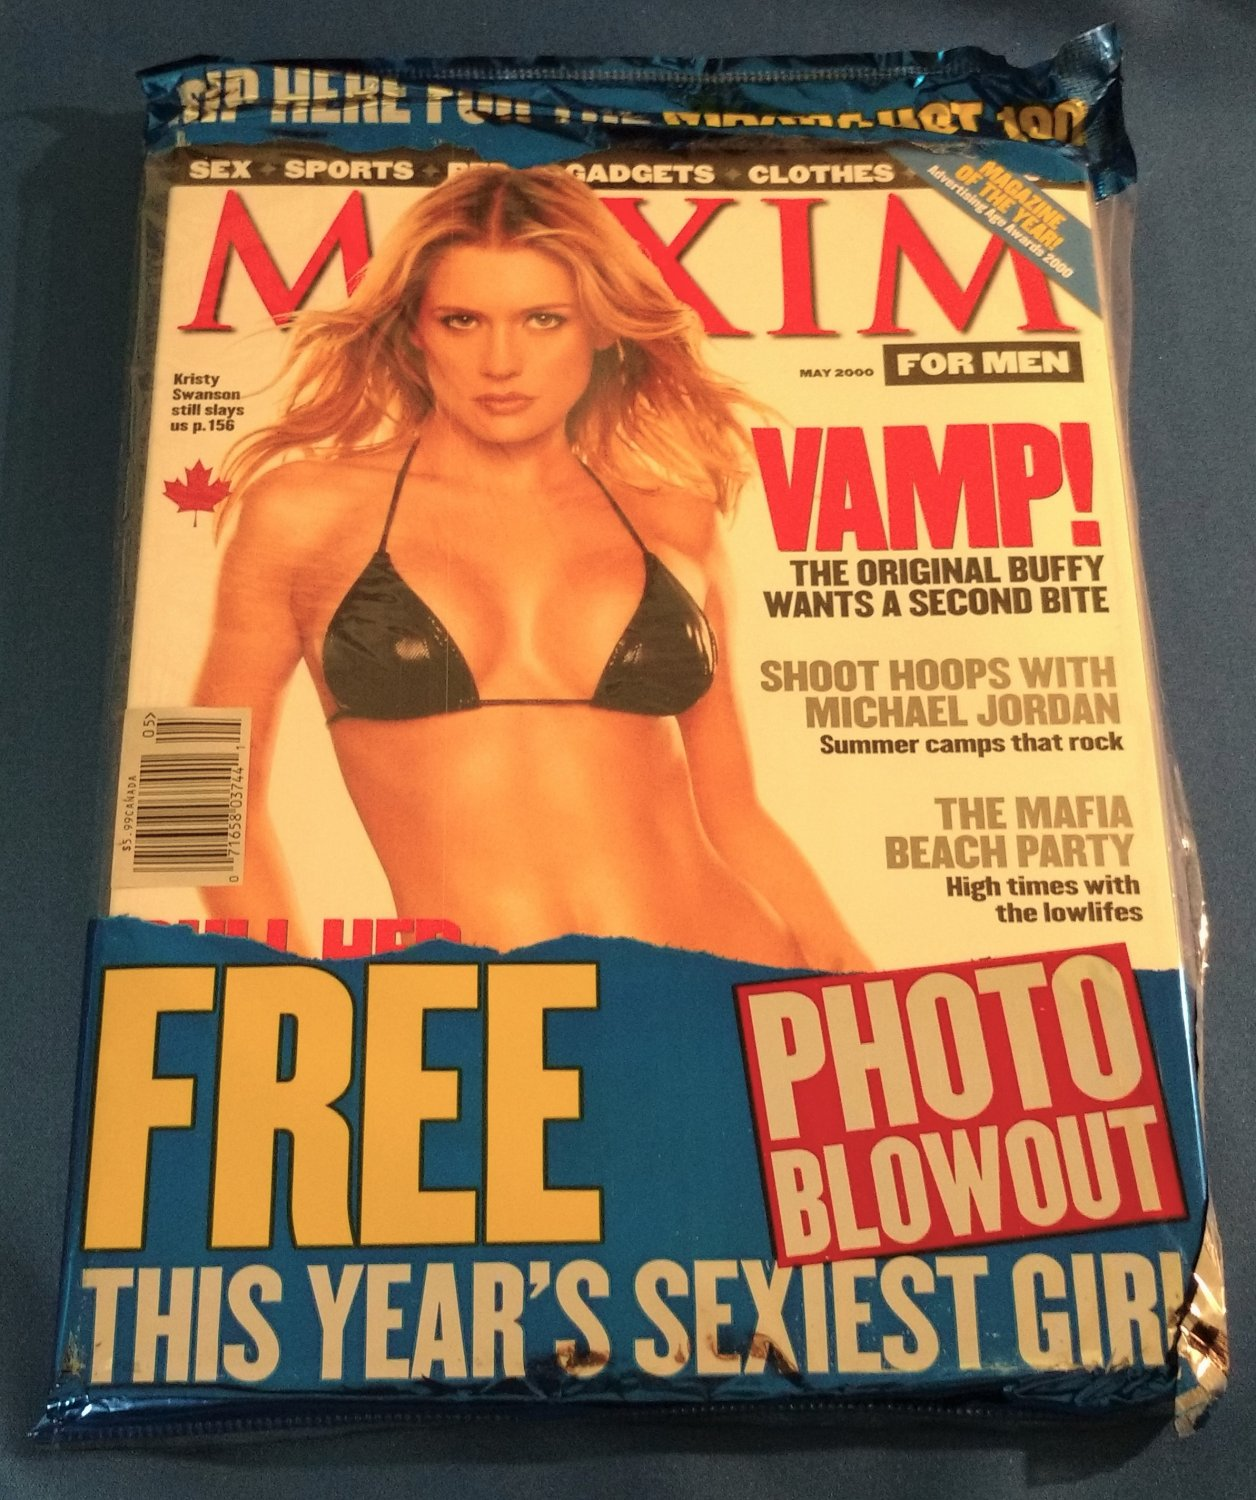 MAXIM MAGAZINE May 2000 Hot 100 KRISTY SWANSON Michael Jordan NEW SEALED COPY!